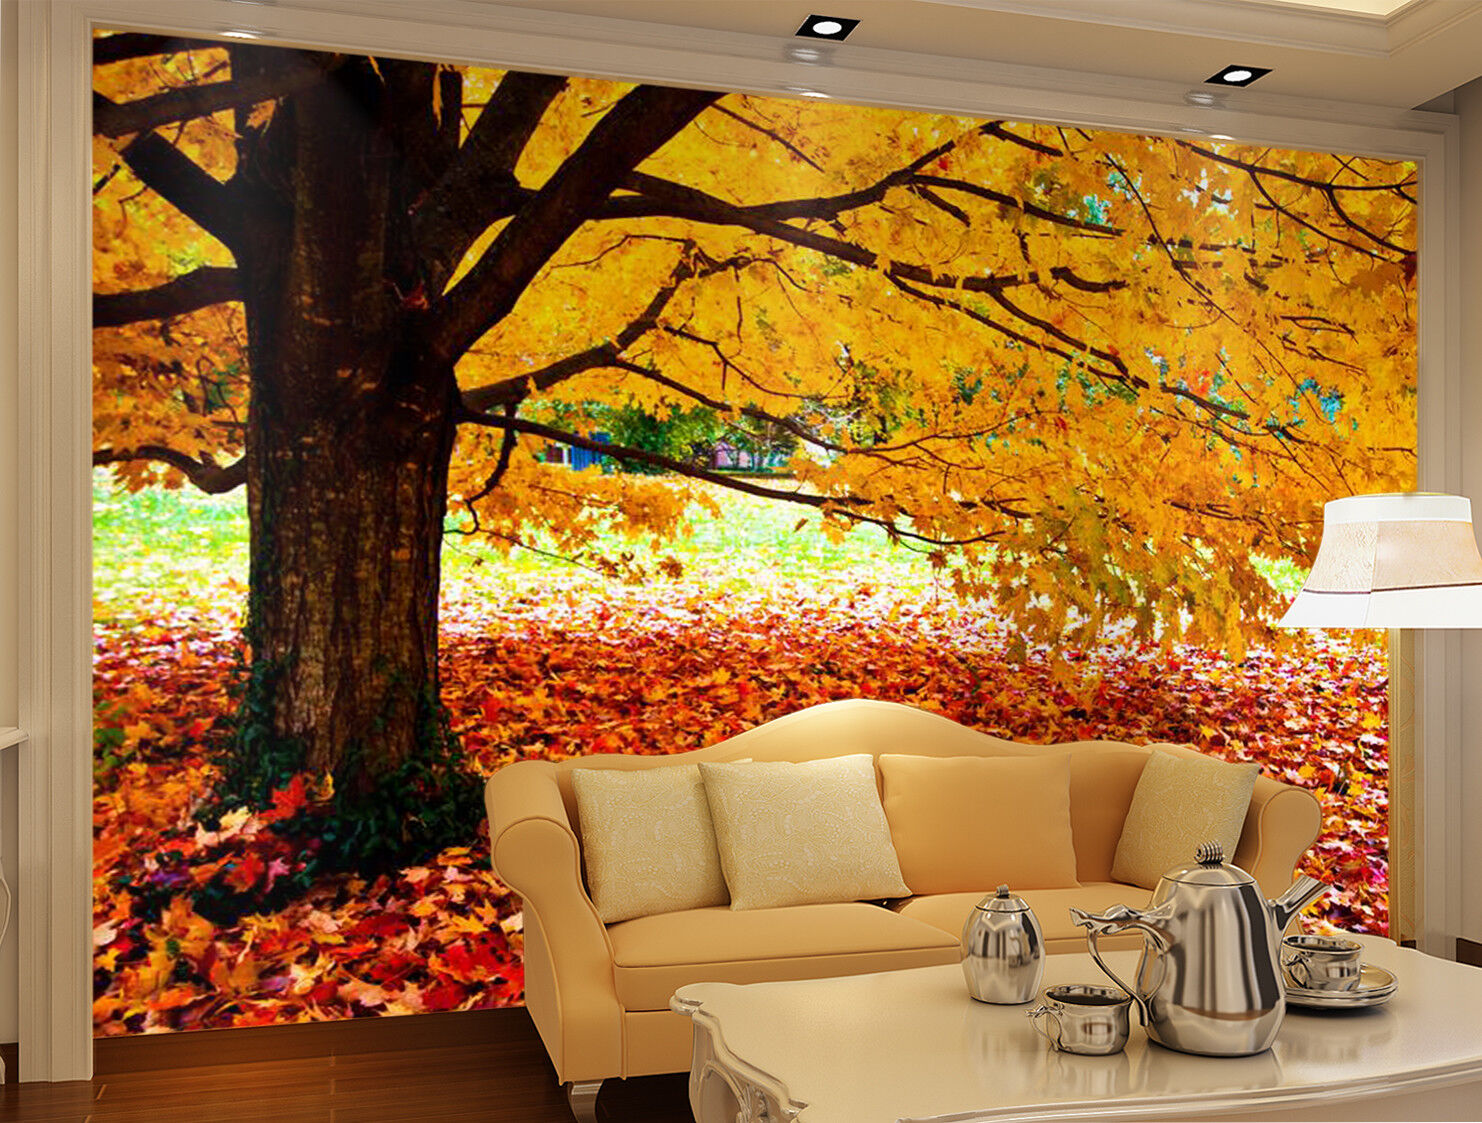 3D Autumn Leaves 973 Wallpaper Mural Paper Wall Print Wallpaper Murals UK